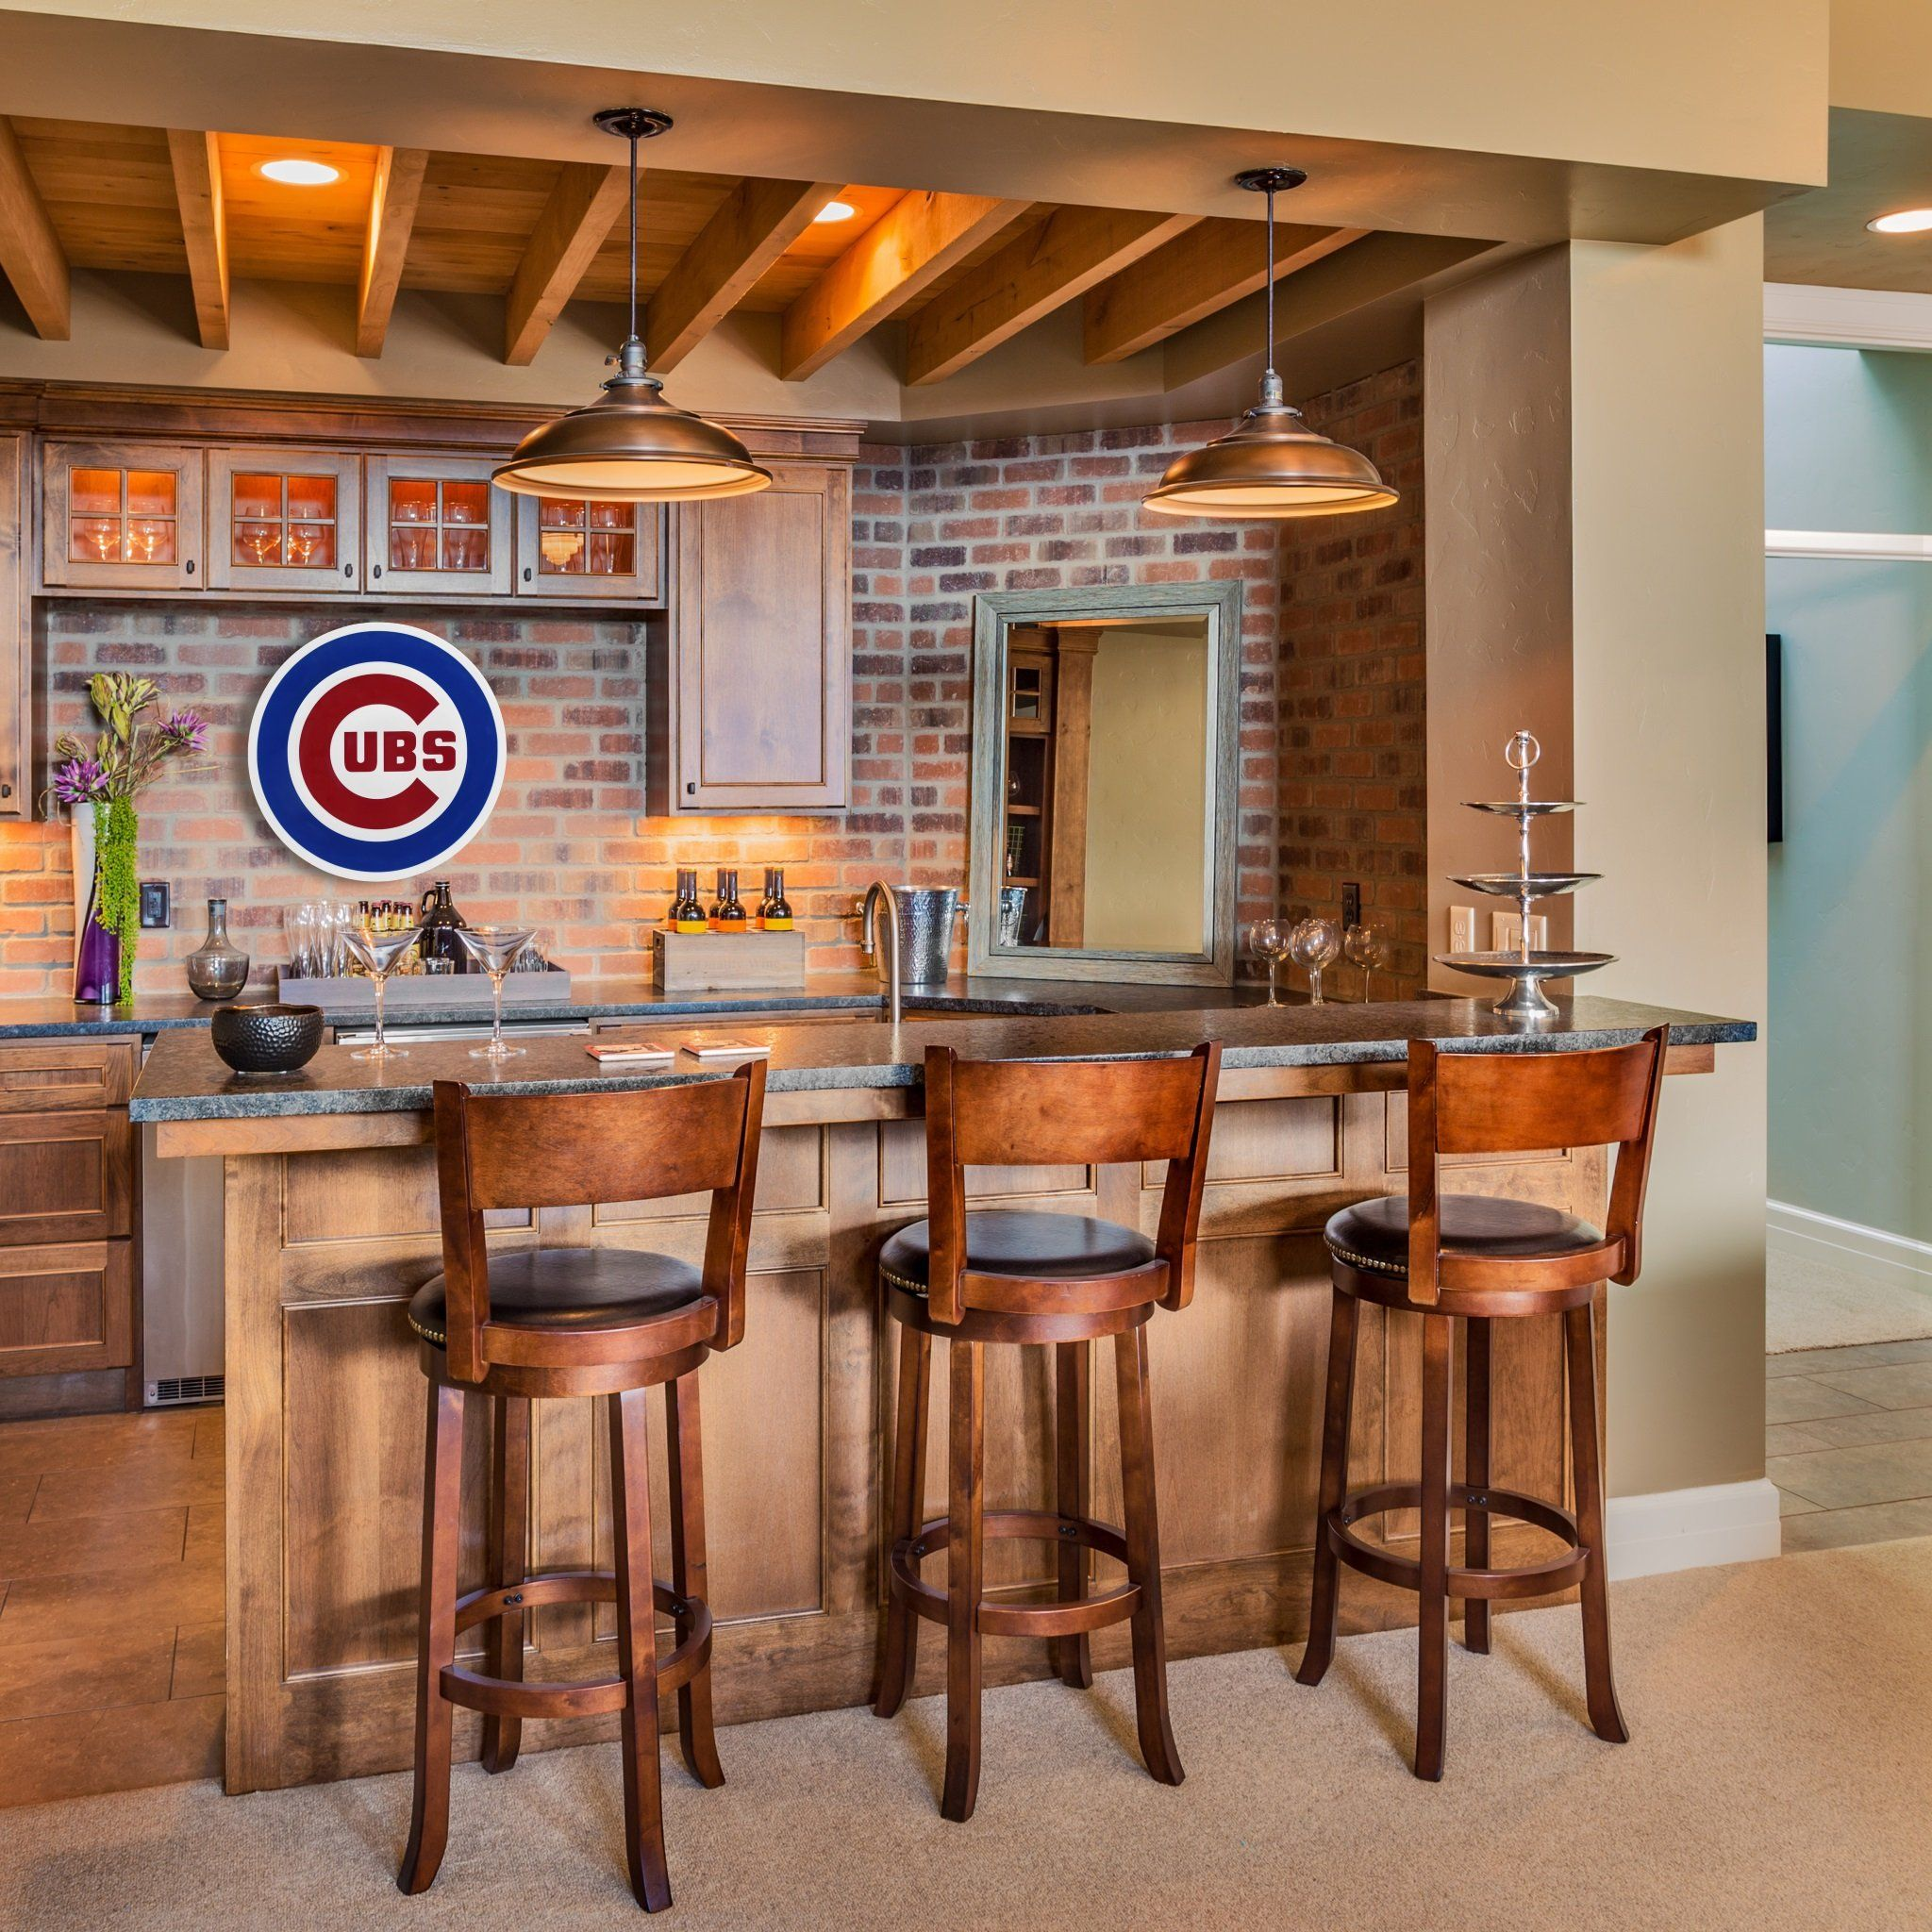 Chicago Cubs Decor | Bar | Pinterest